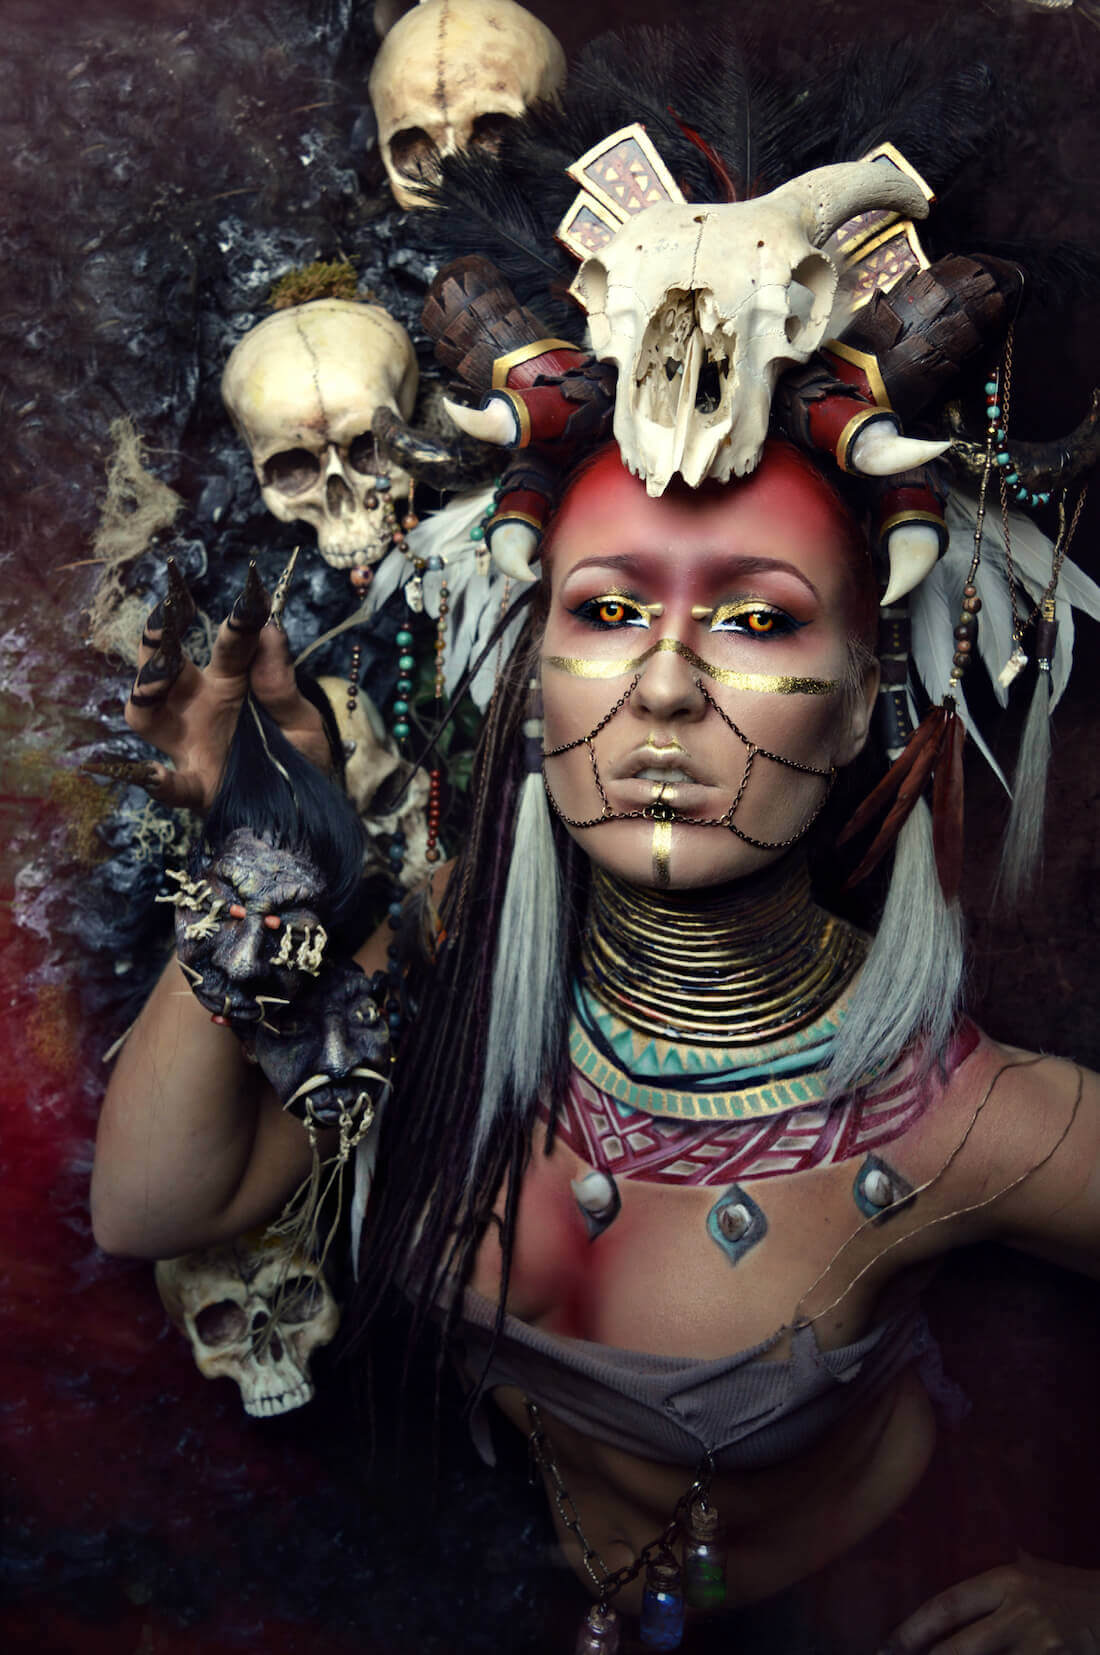 voodoo-makeup-styling-extreme-halloween-candy-makeup-artist